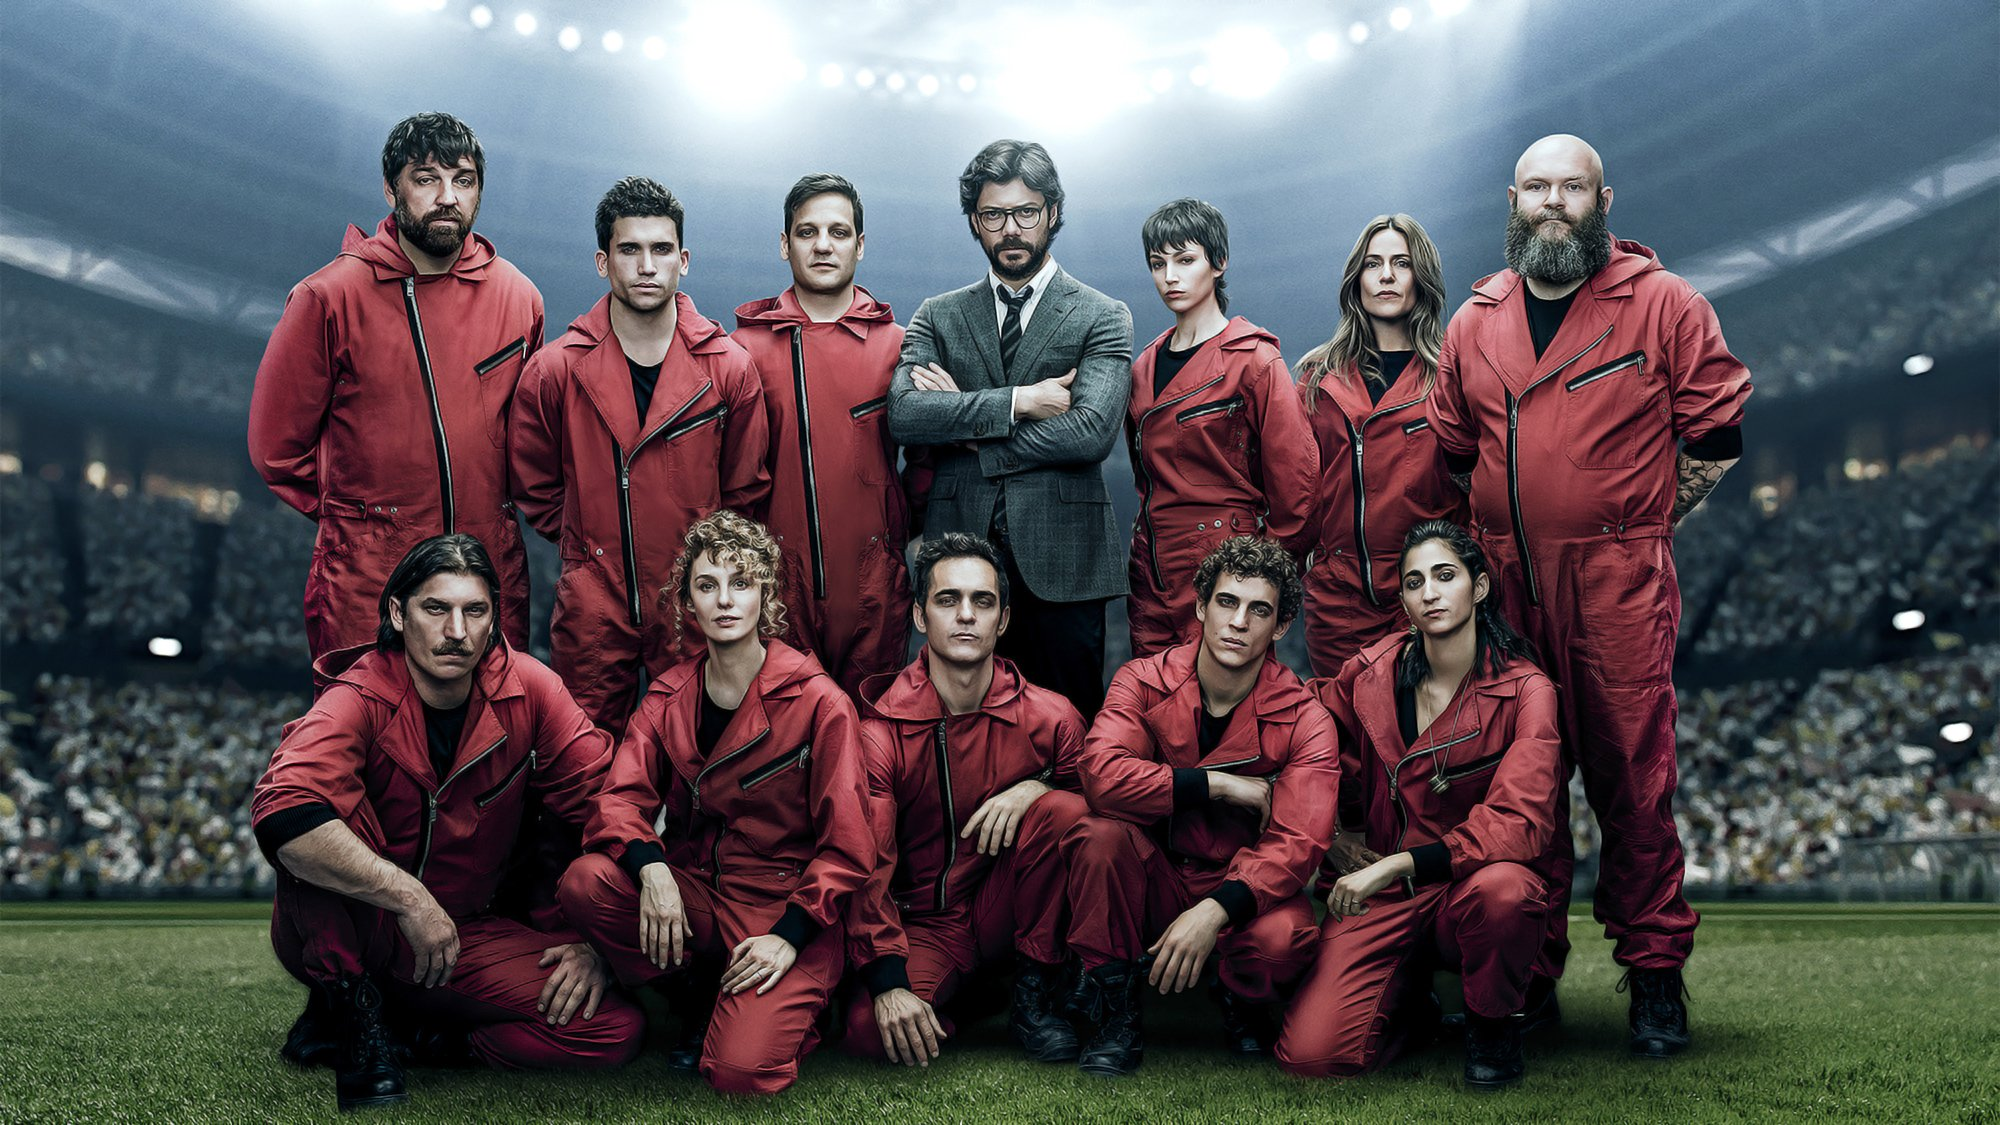 Money Heist' Season 5 Will Not Be Disappointing